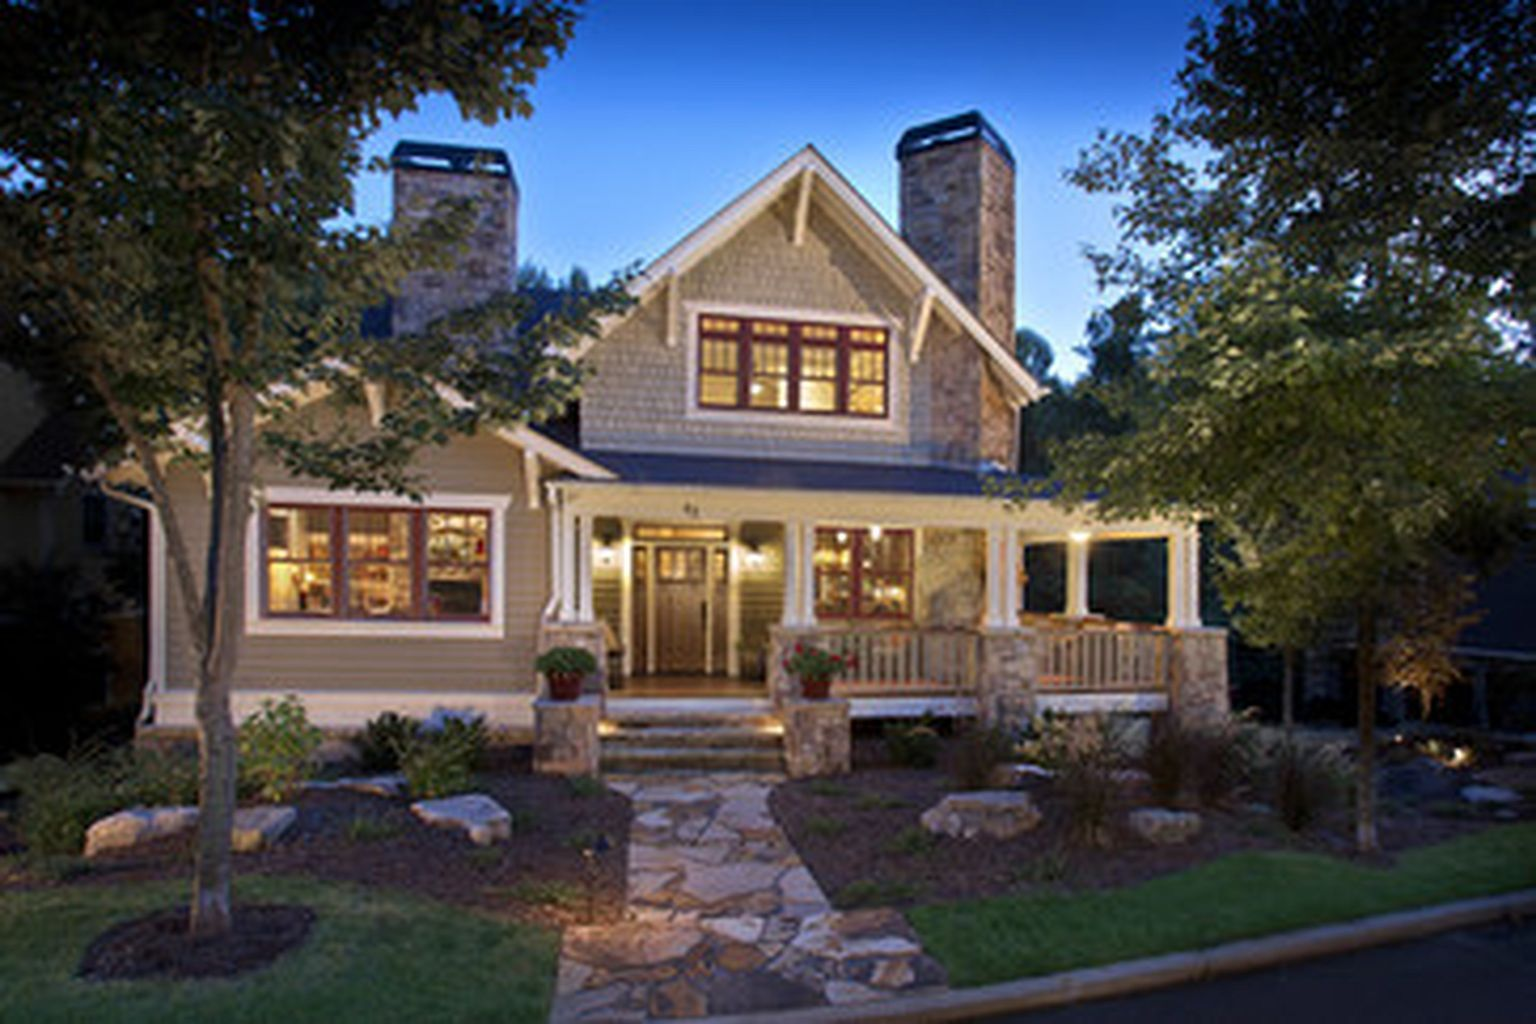 craftsman style homes exterior ideas - Craftsman Bungalow Home Exterior